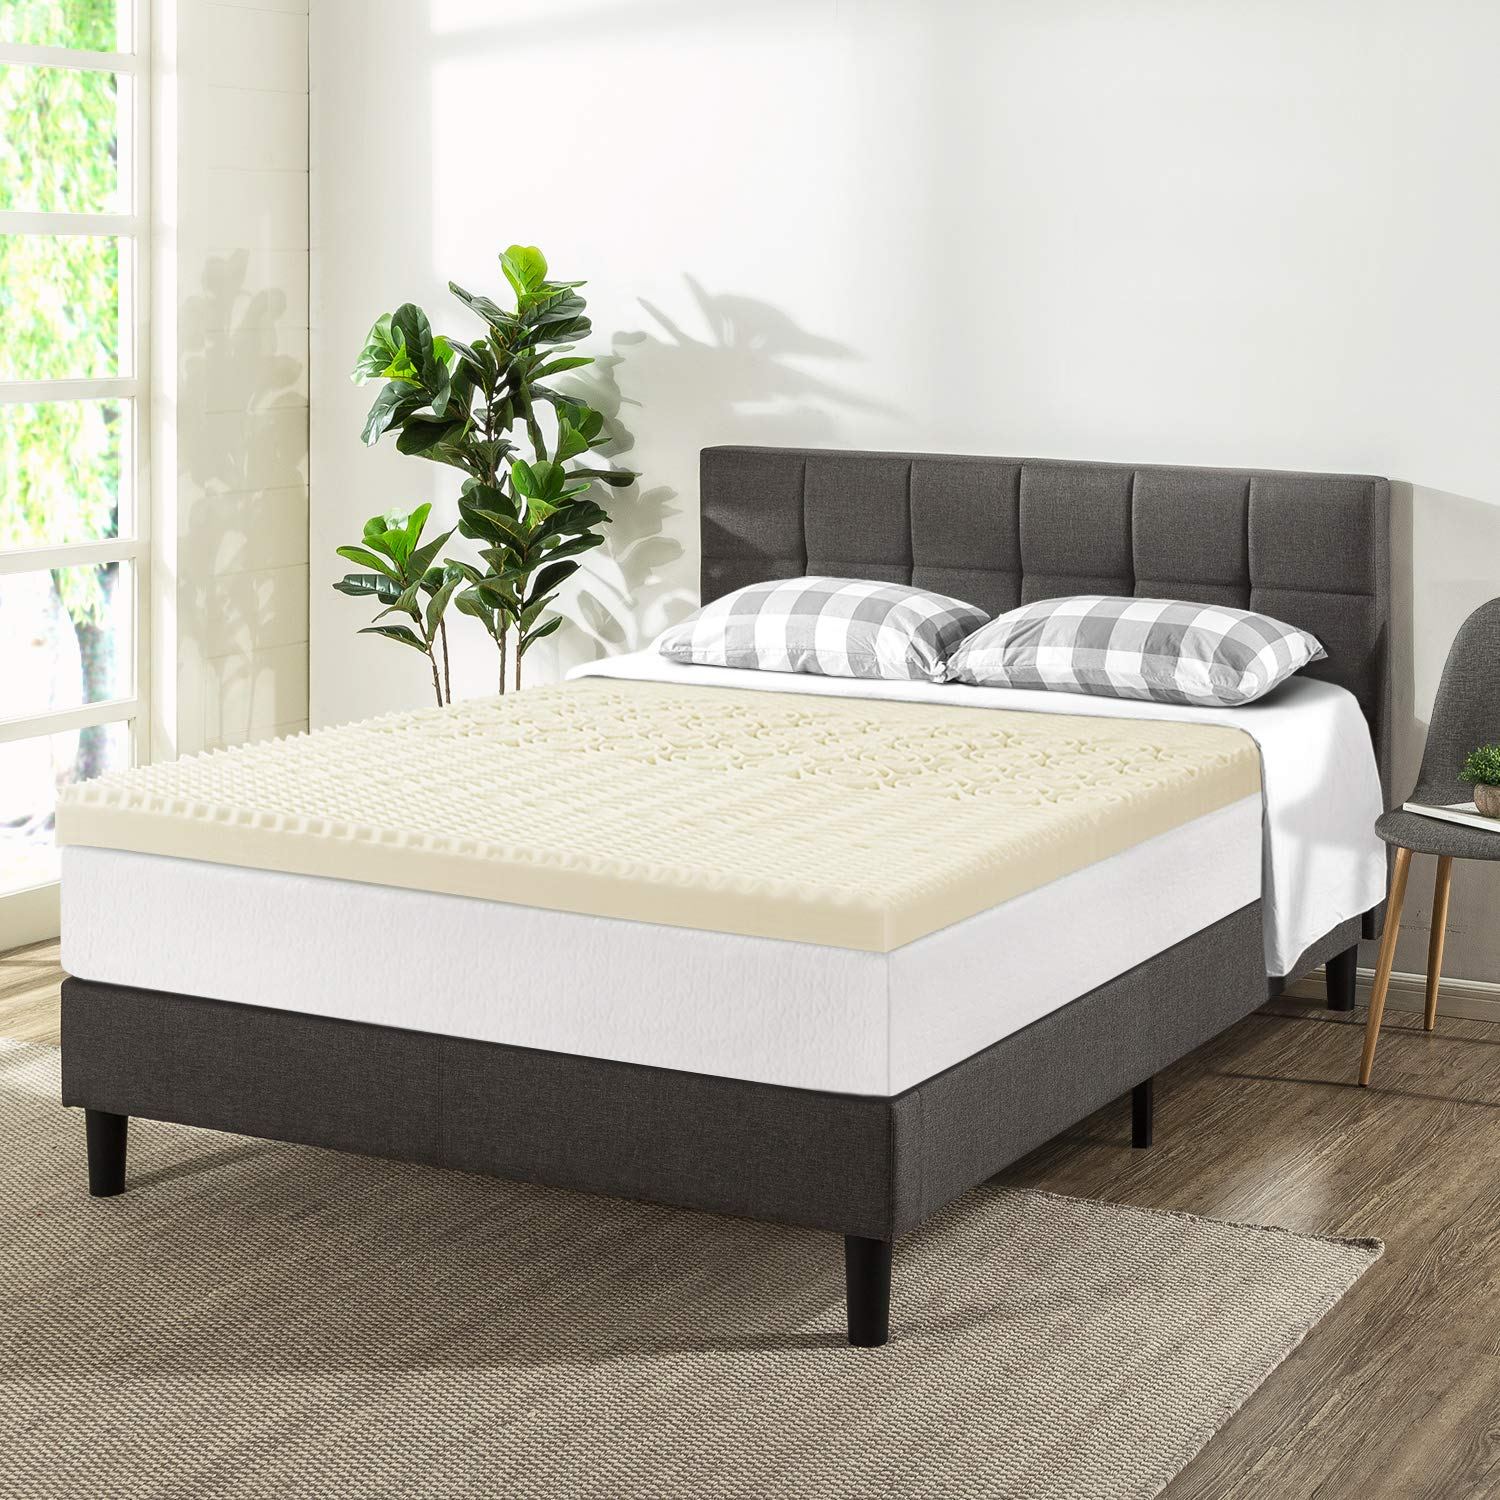 Best Price Mattress Twin 3 Inch 5-Zone Memory Foam Bed Topper with Copper Infused